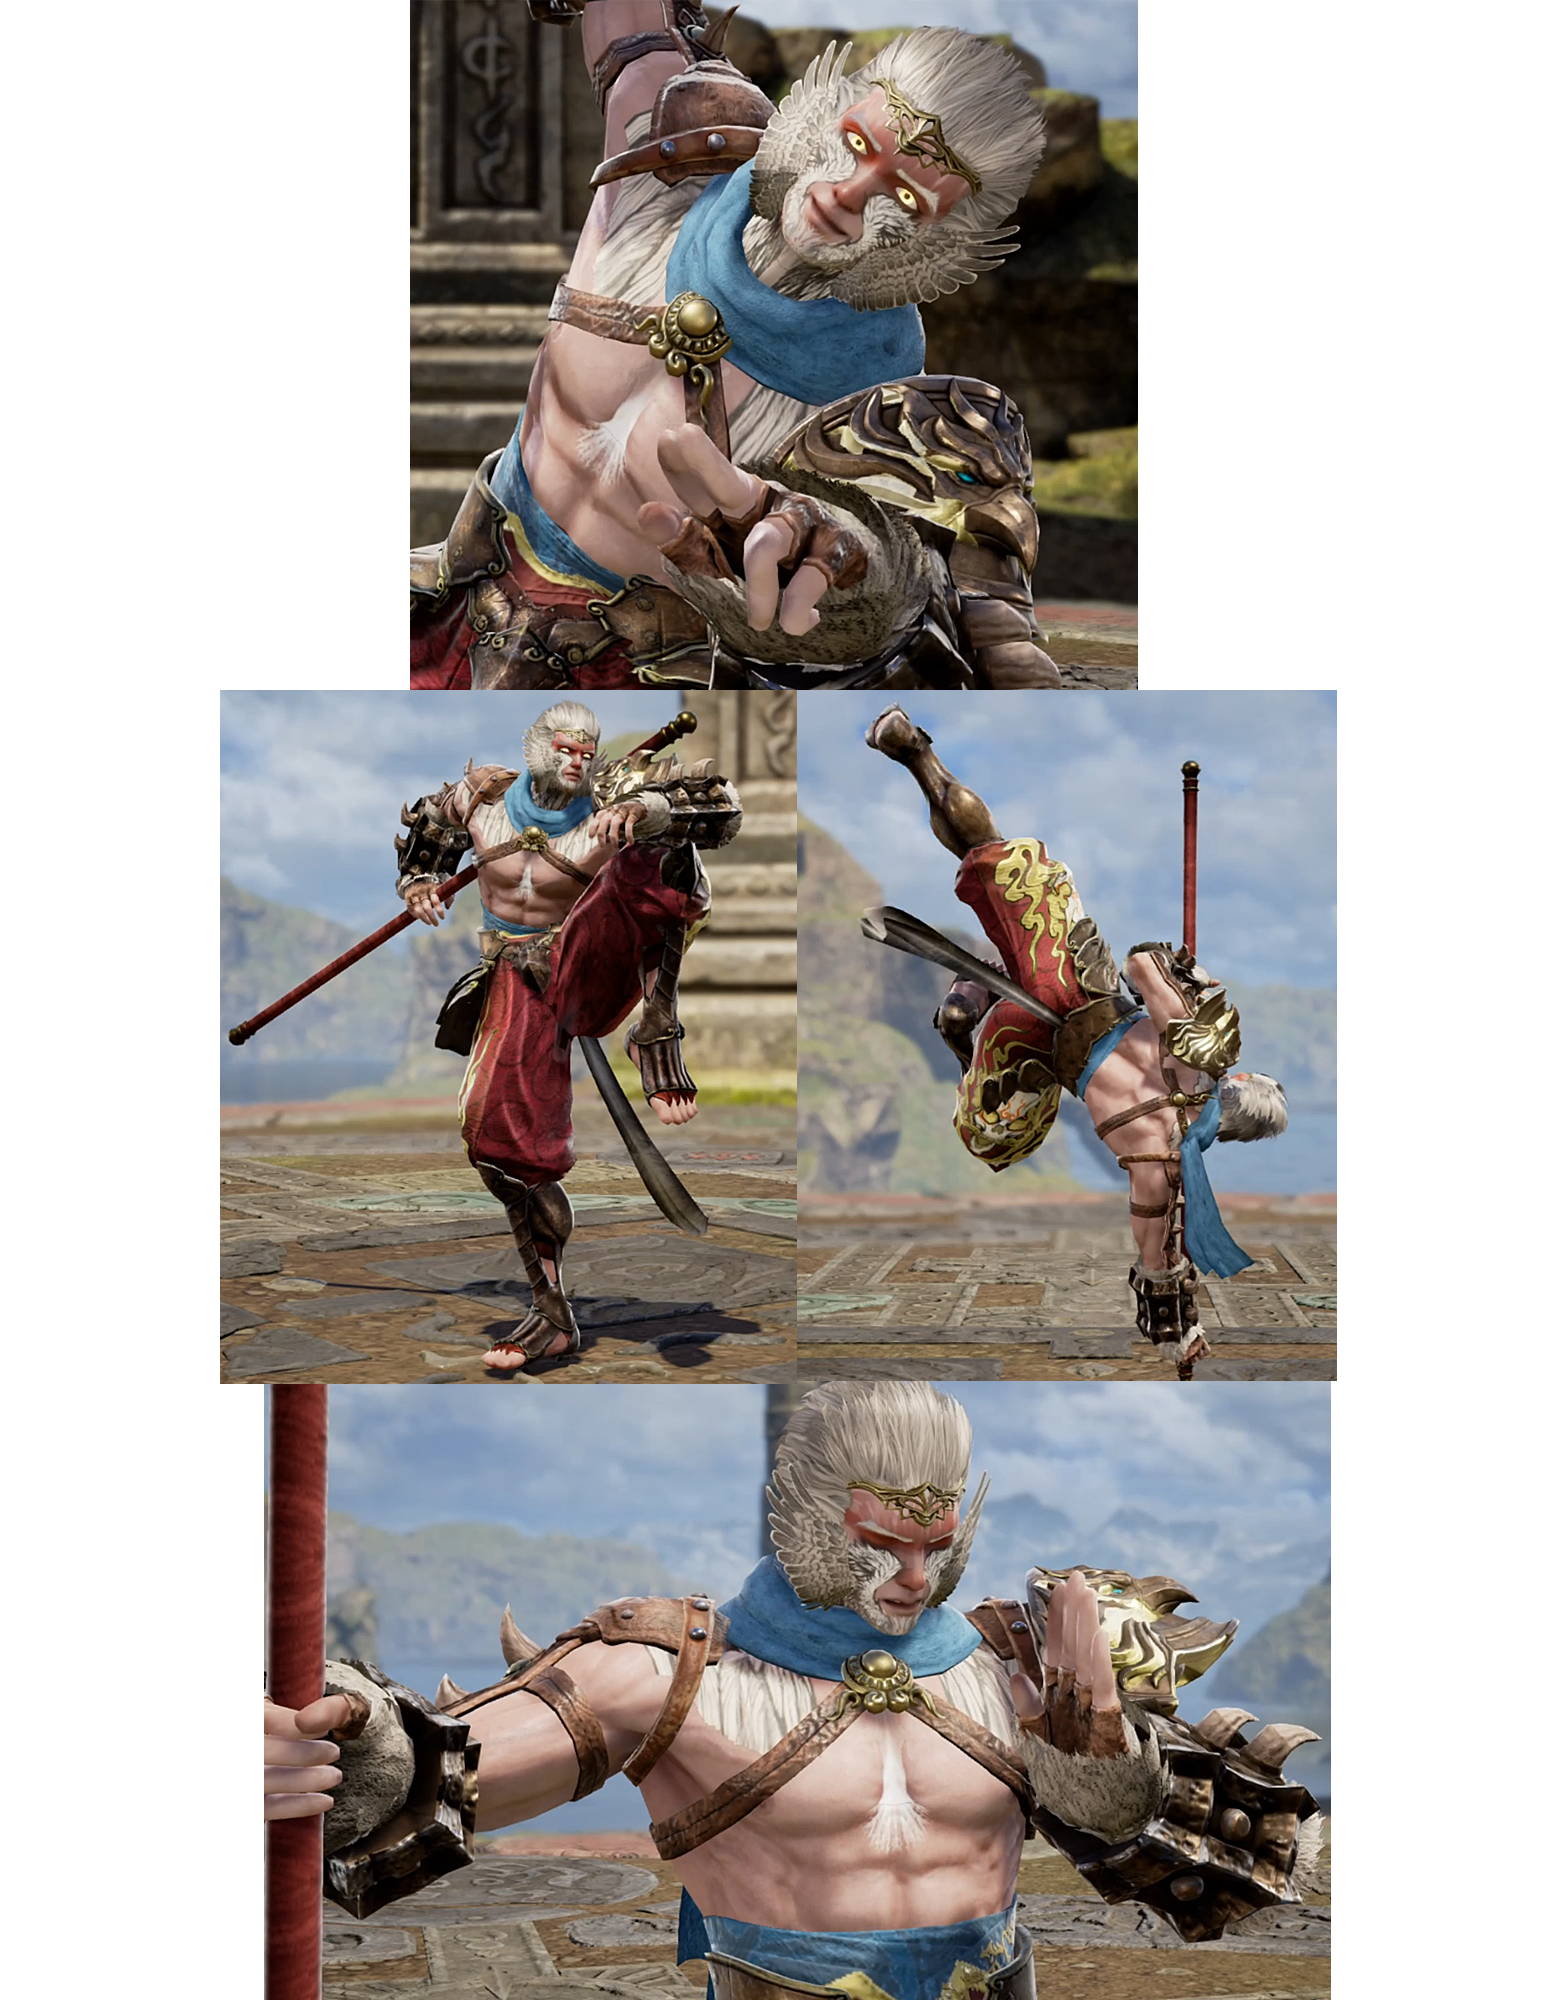 wukong collage.png